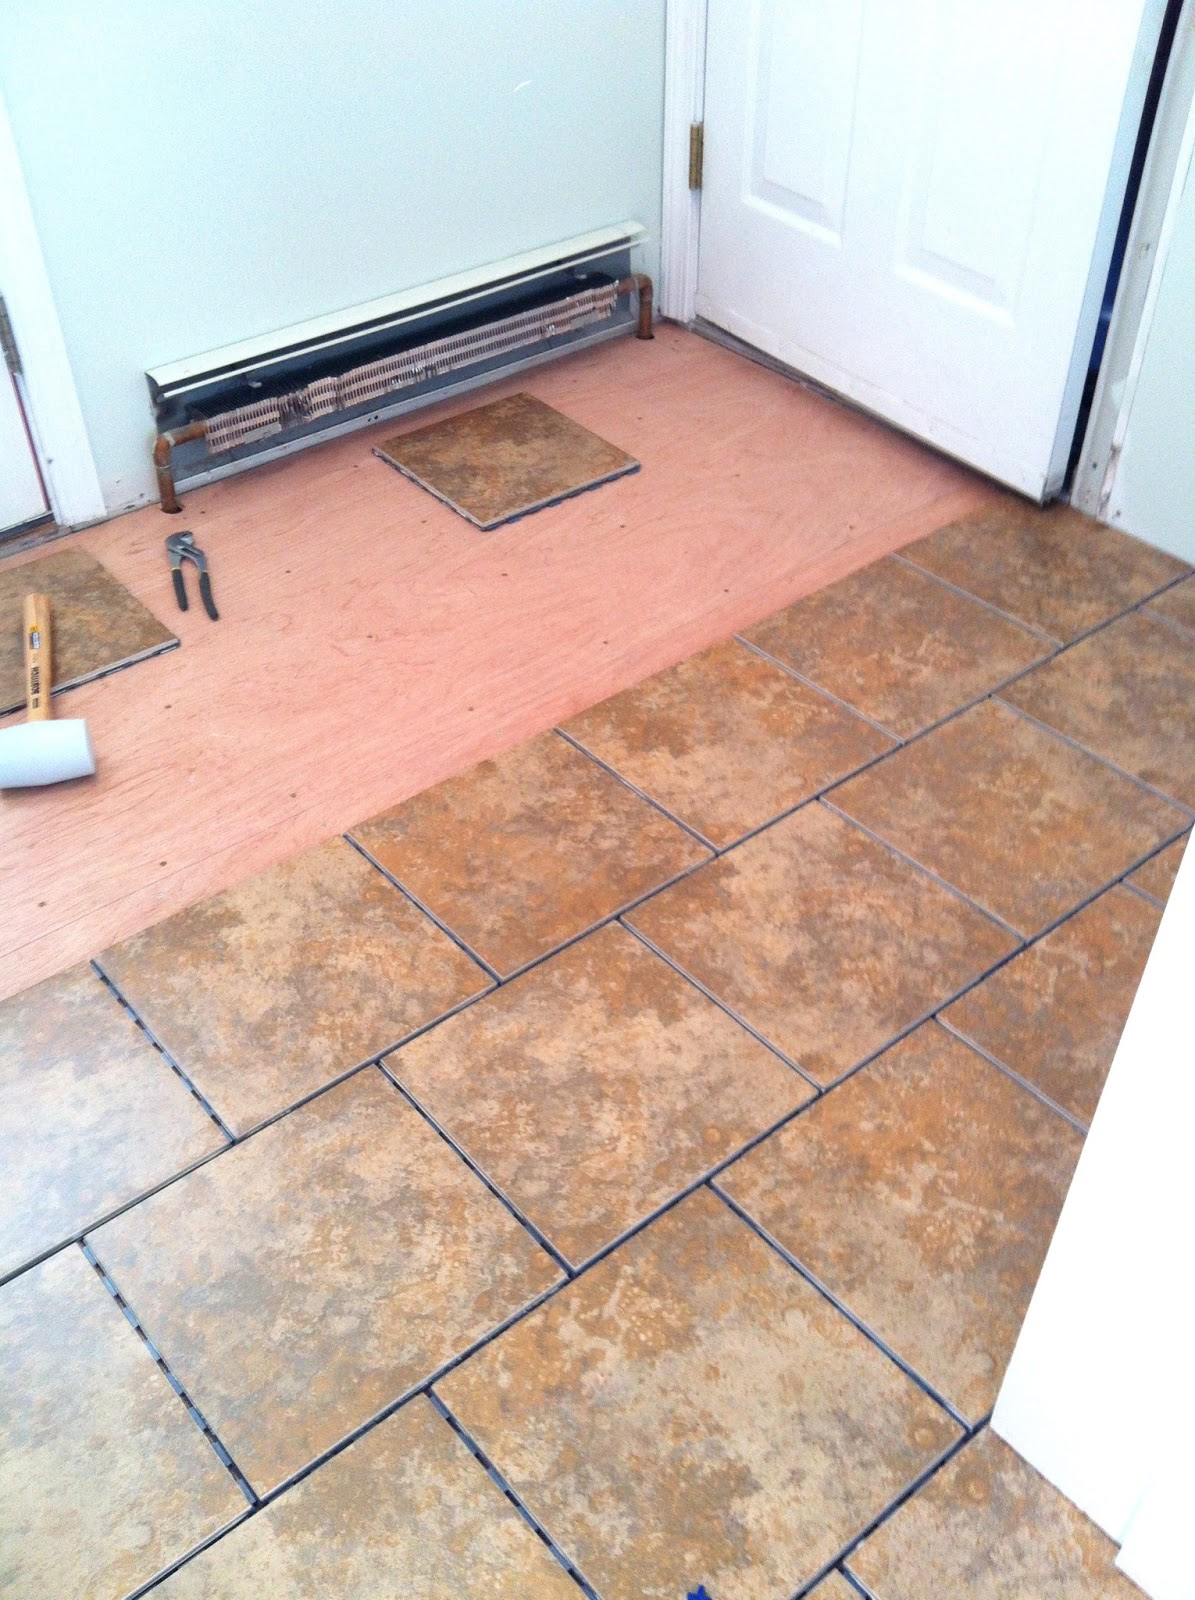 A Review Of SnapStone Floating Tile Floor